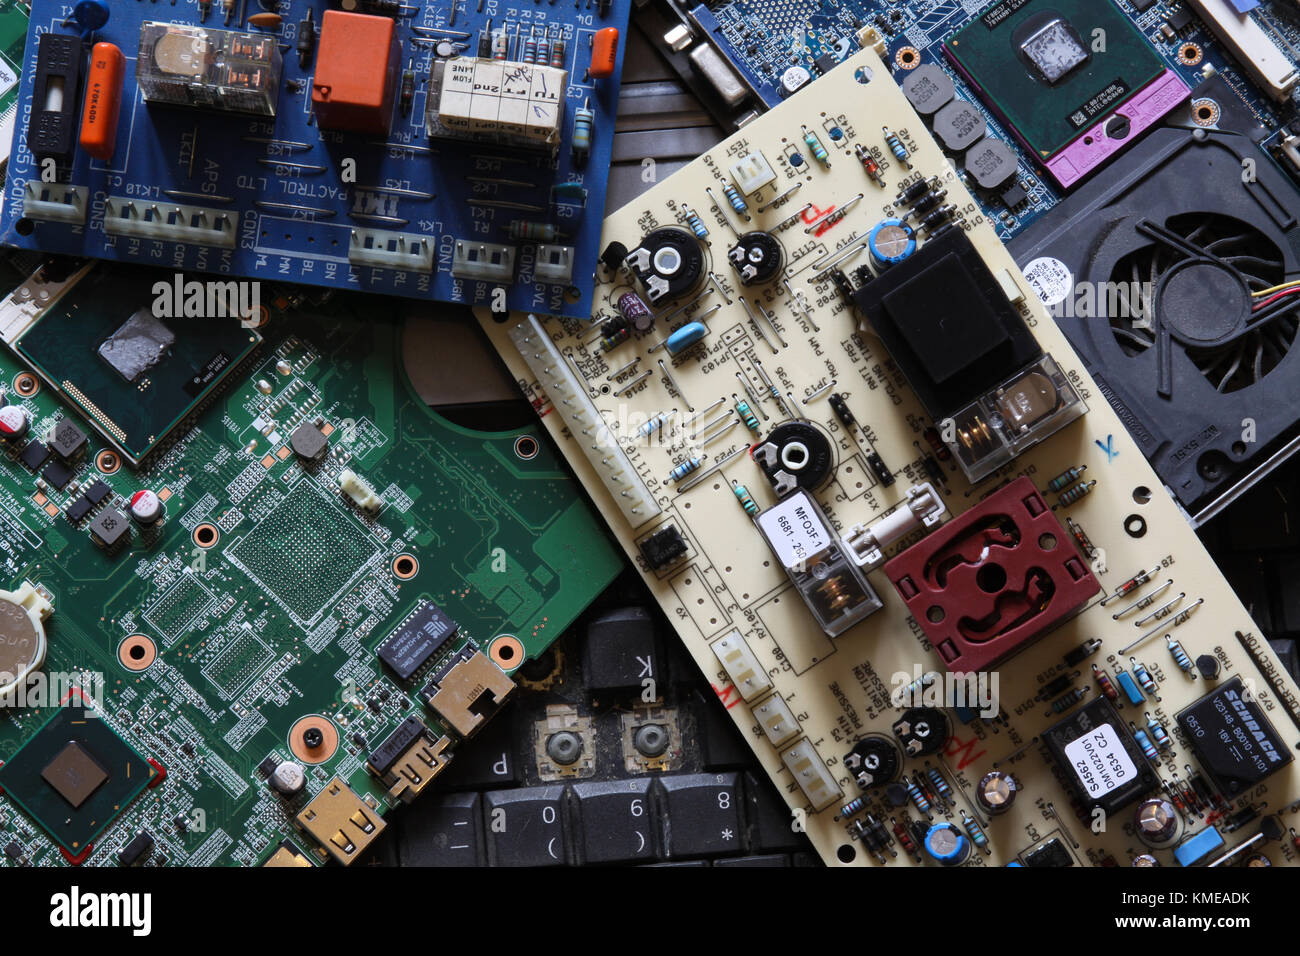 Scrap Computer Parts Stock Photos 10 Circuit Board Composition Notebook Waste Boards And Computers Uk Image